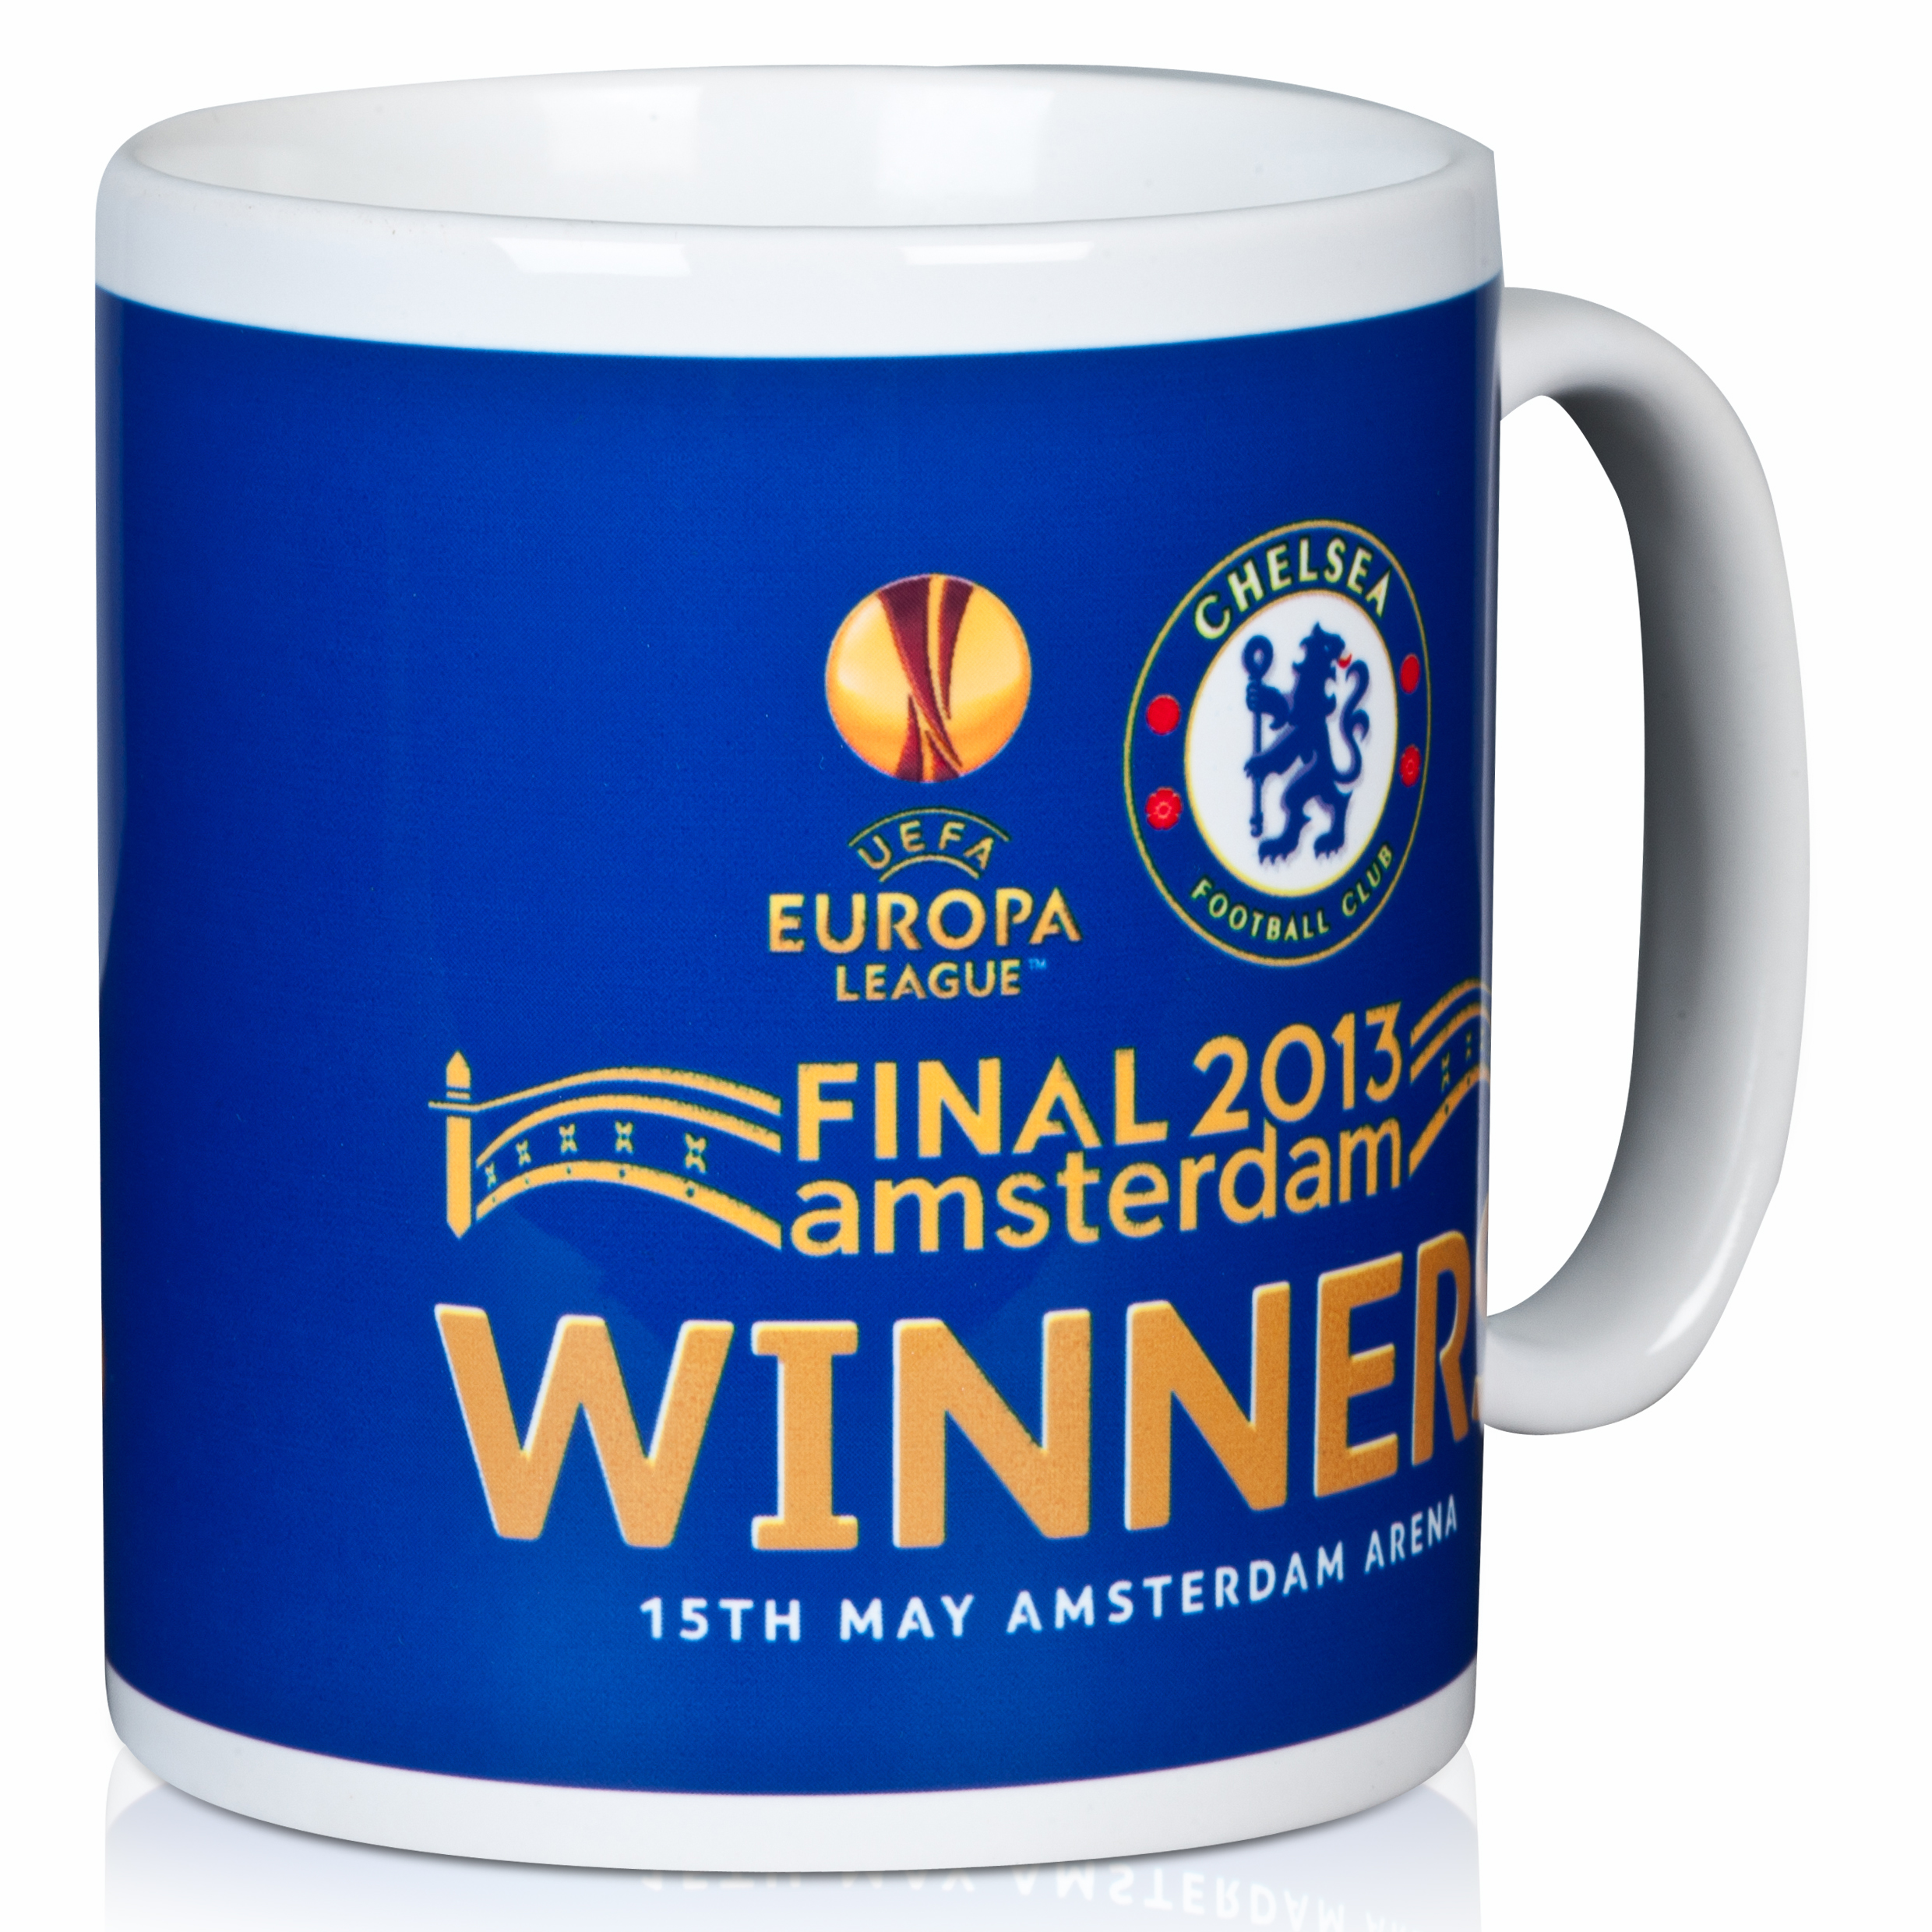 Chelsea EUROPA League 2013 Winners Mug